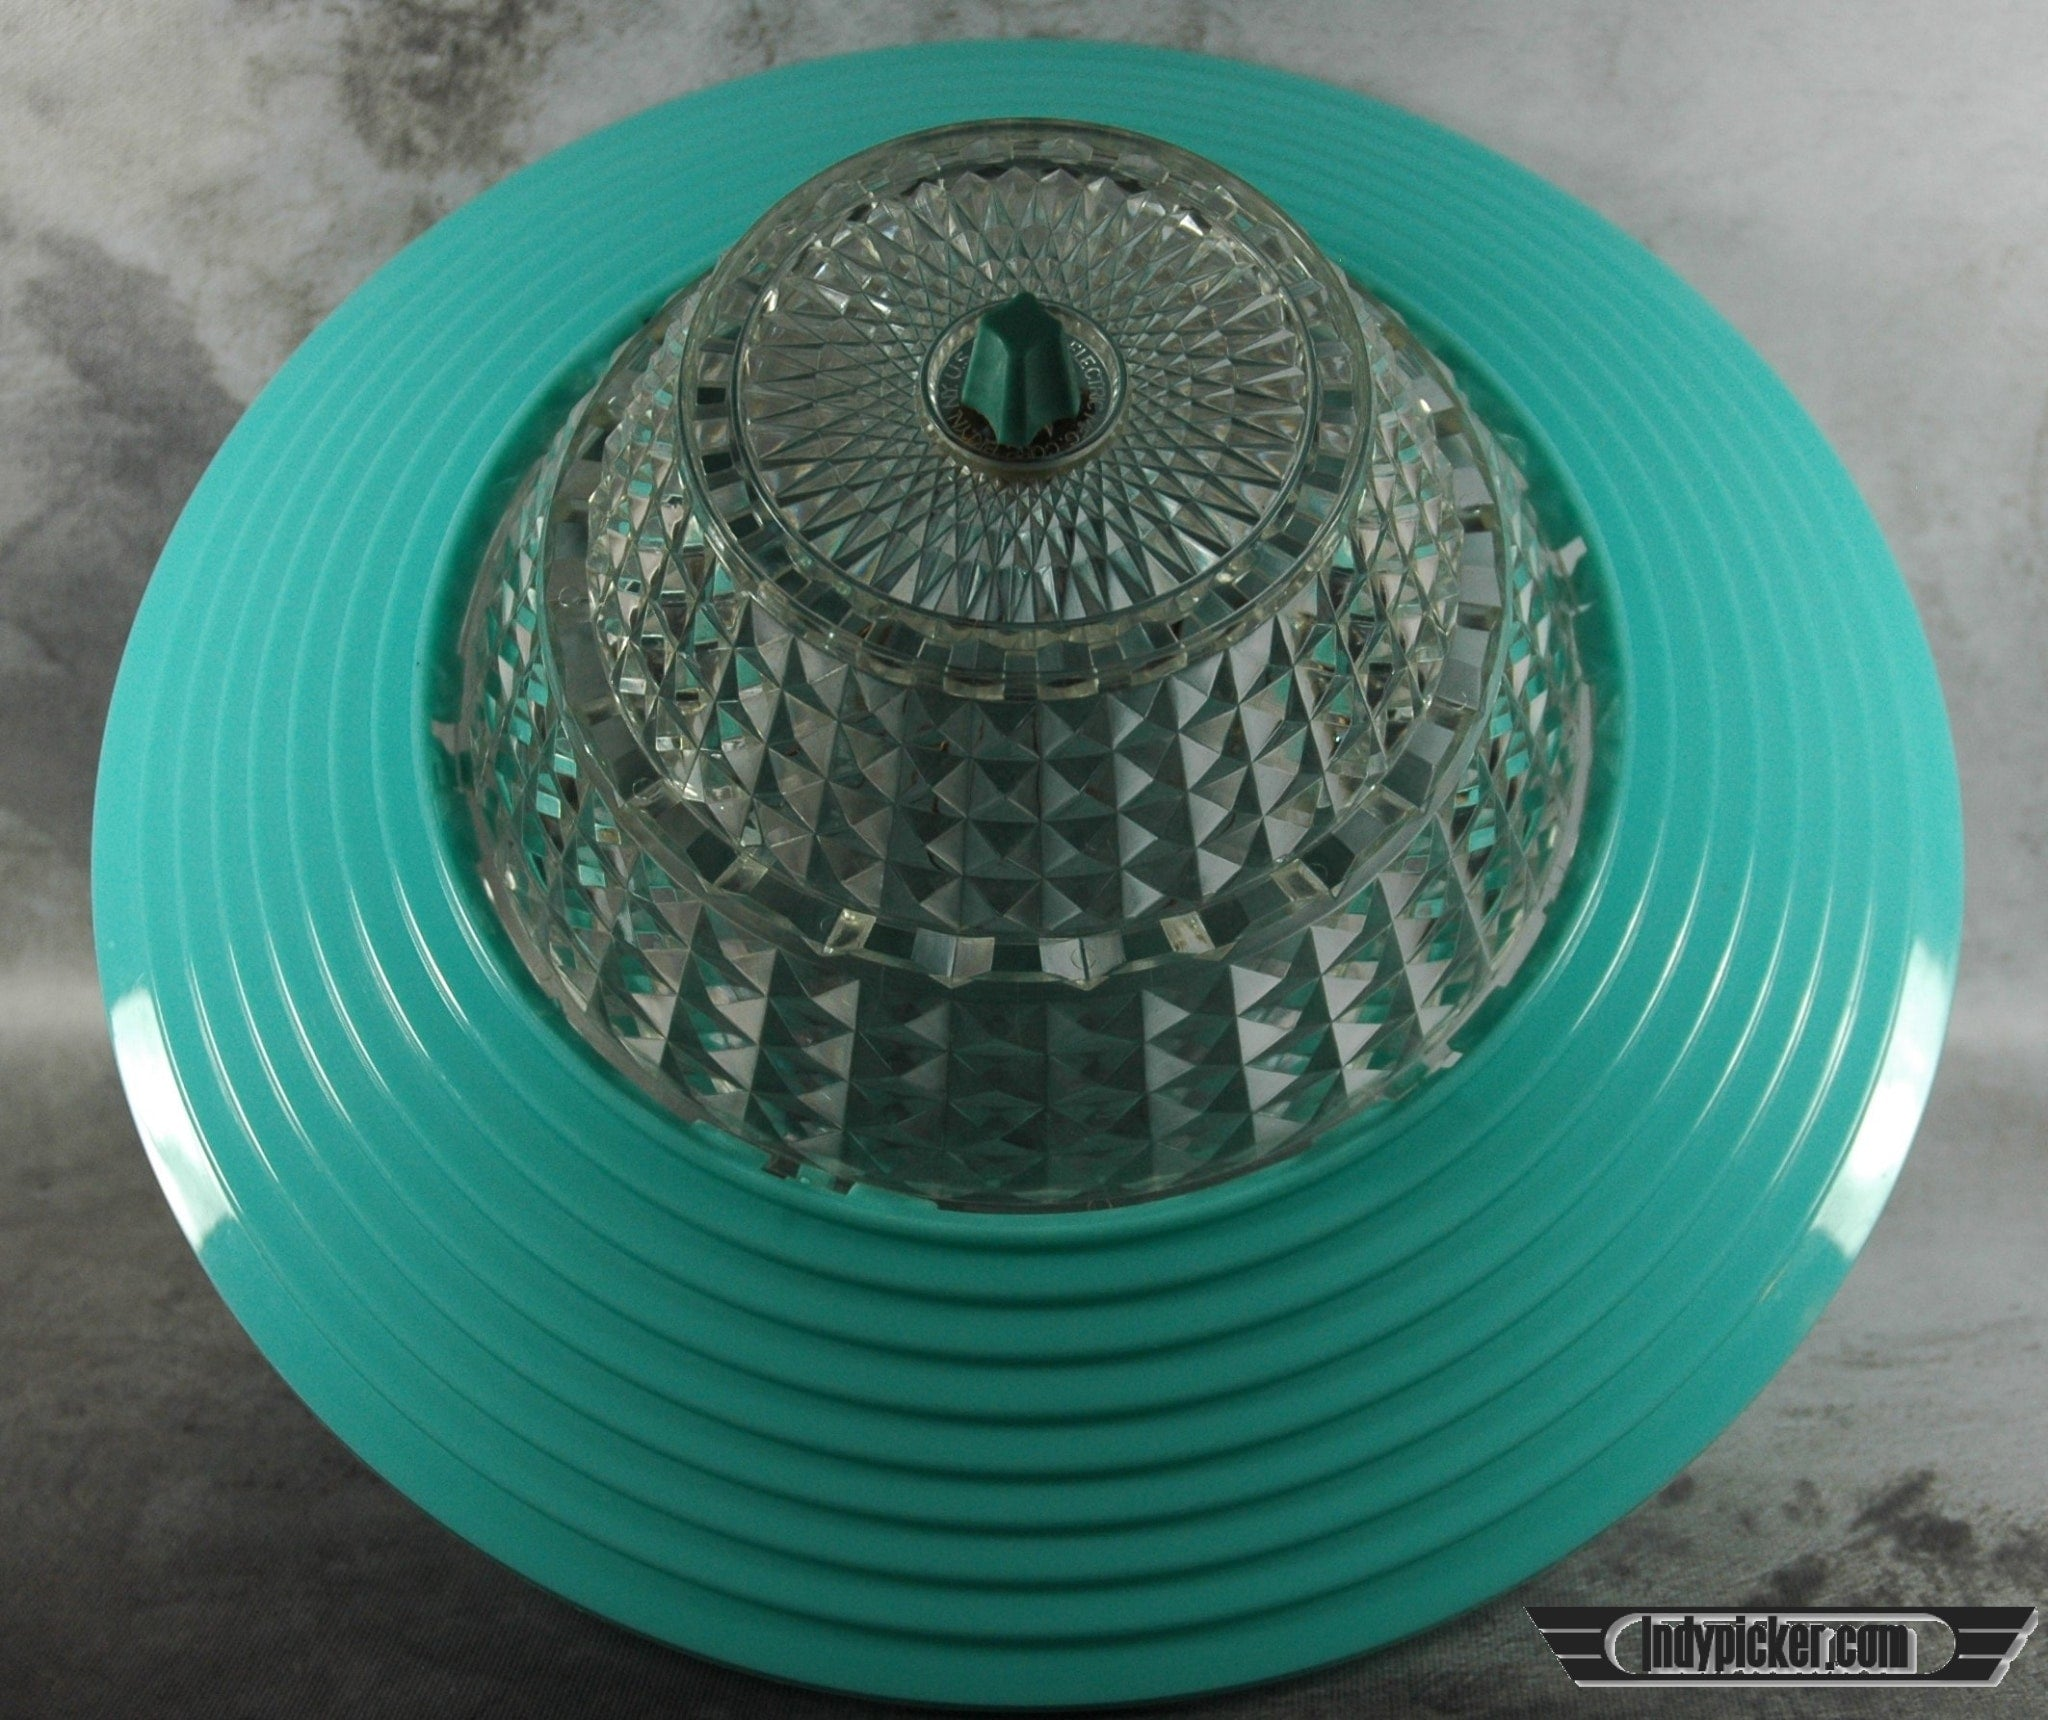 Vintage Lampshade Mid Century Modern Turquoise